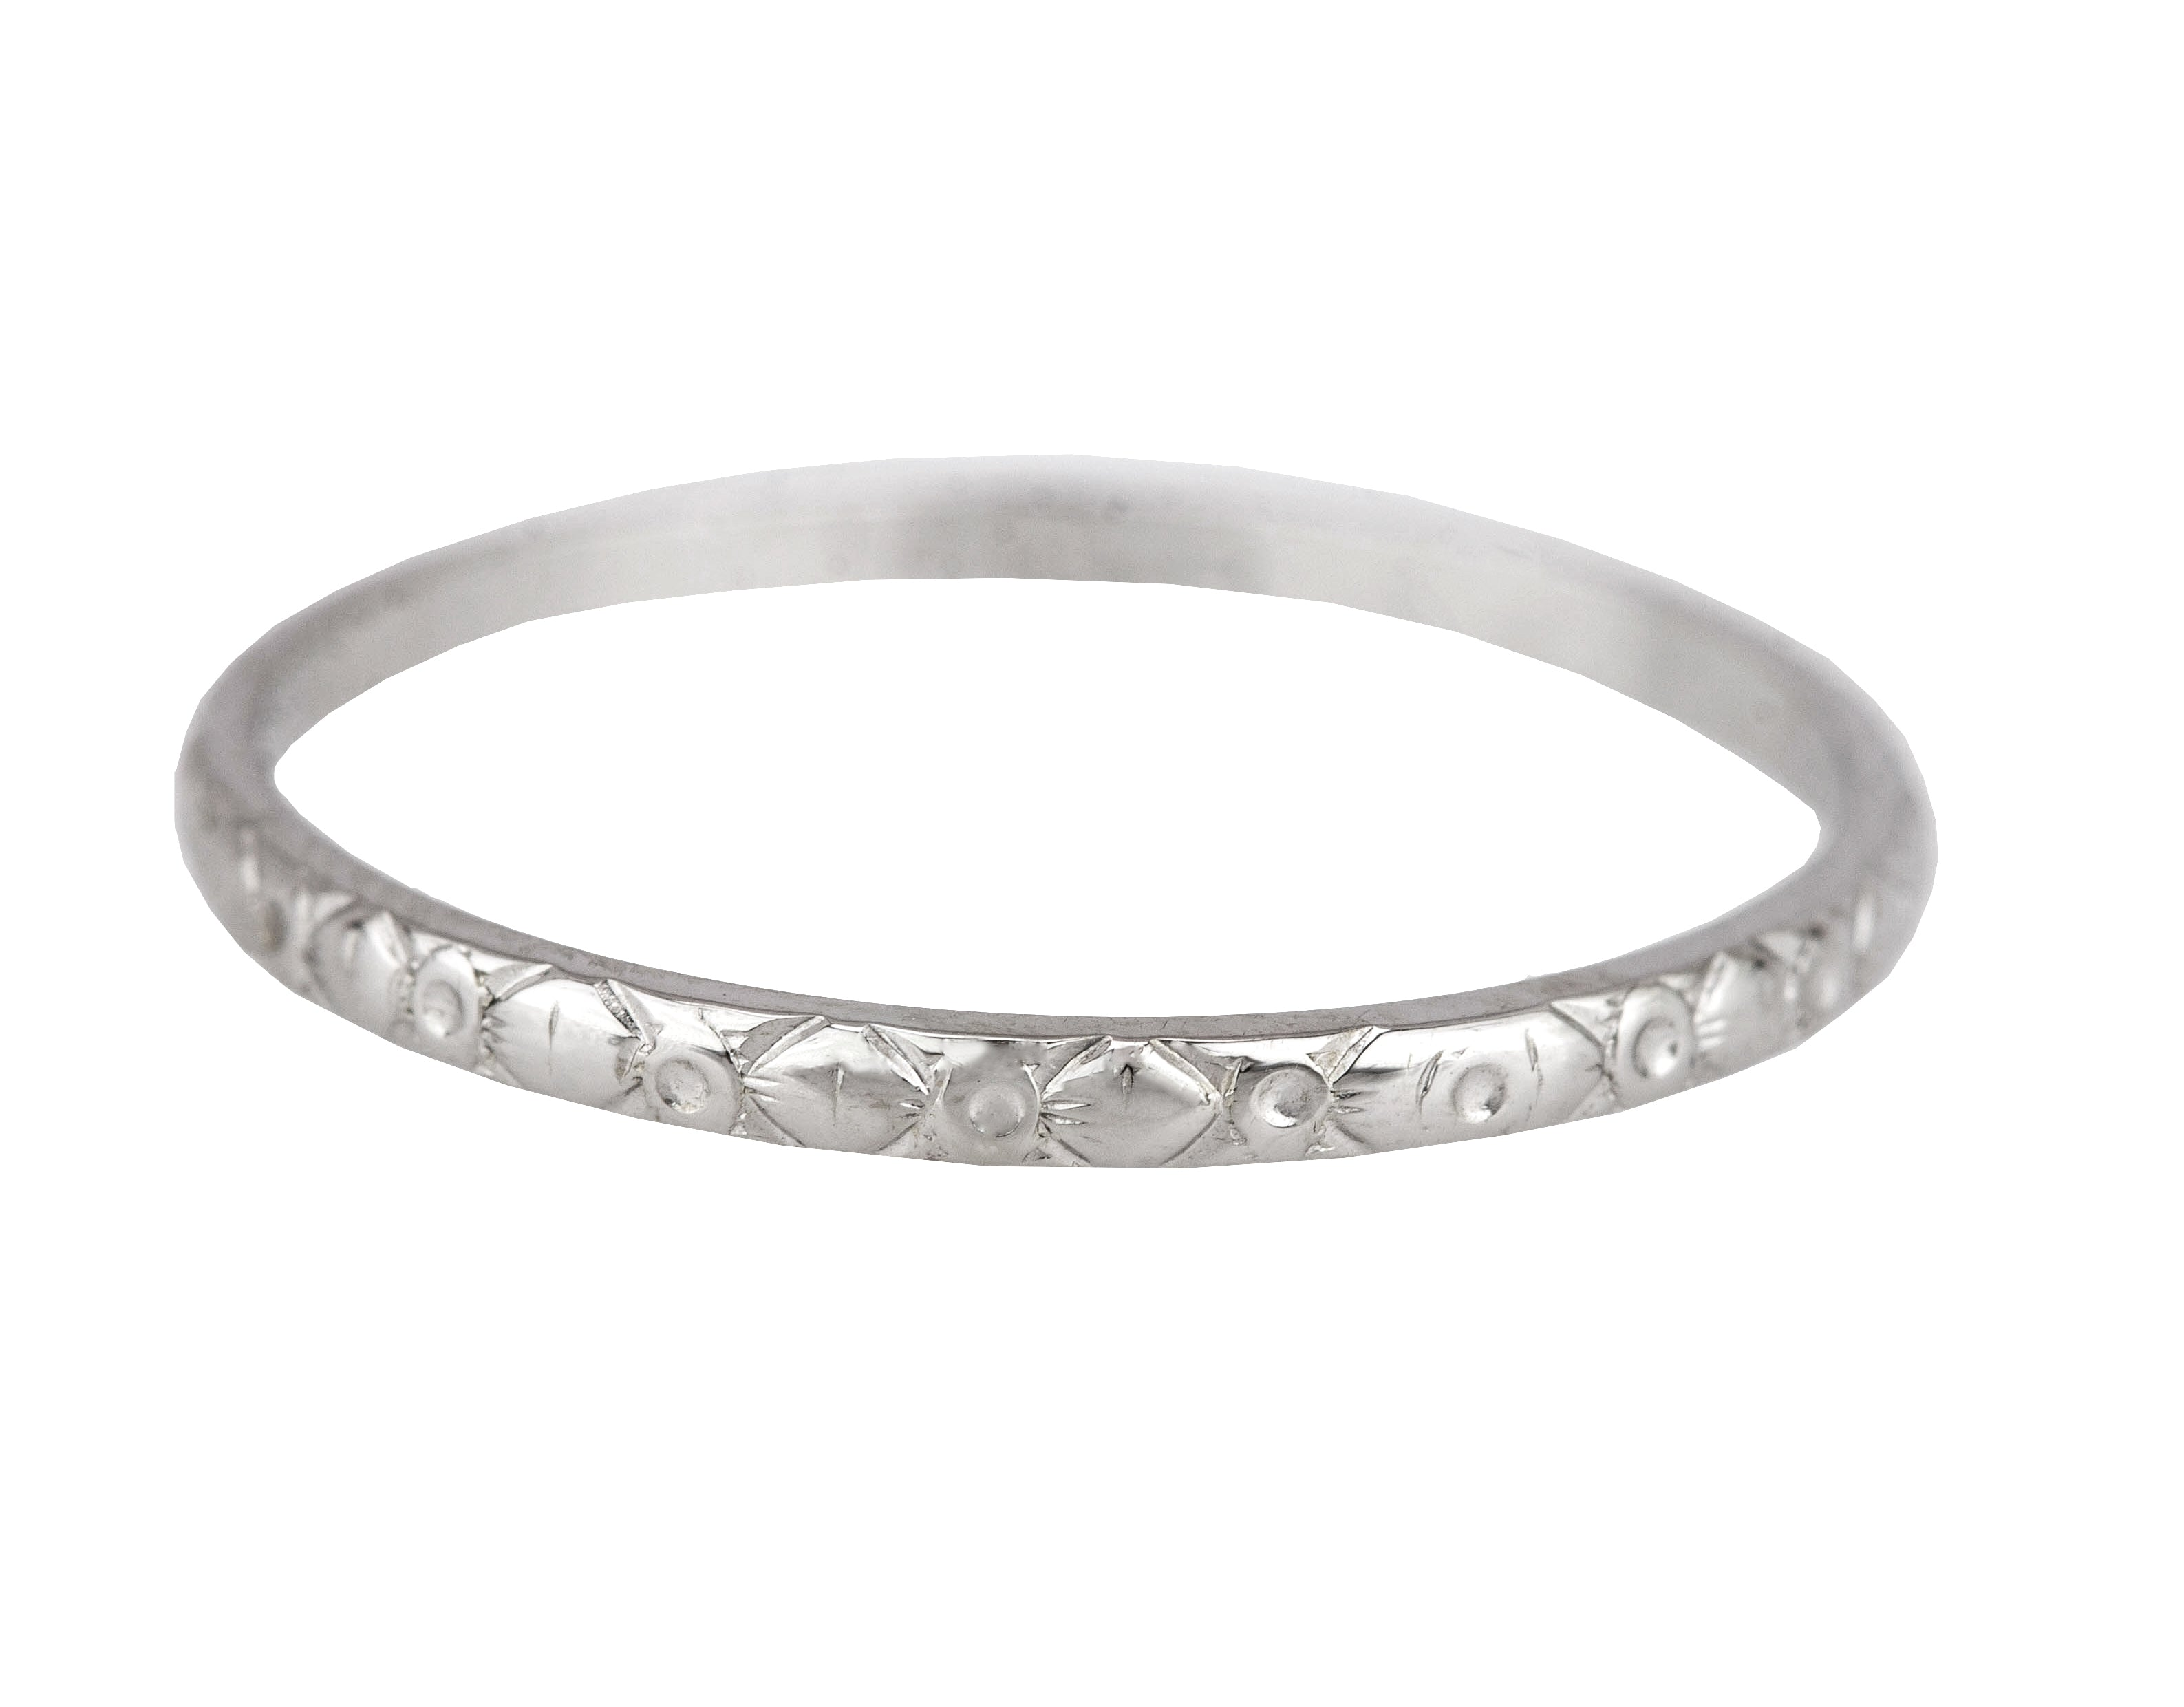 1930's Antique Art Deco 18K White Gold Engraved Eternity Wedding Band Ring